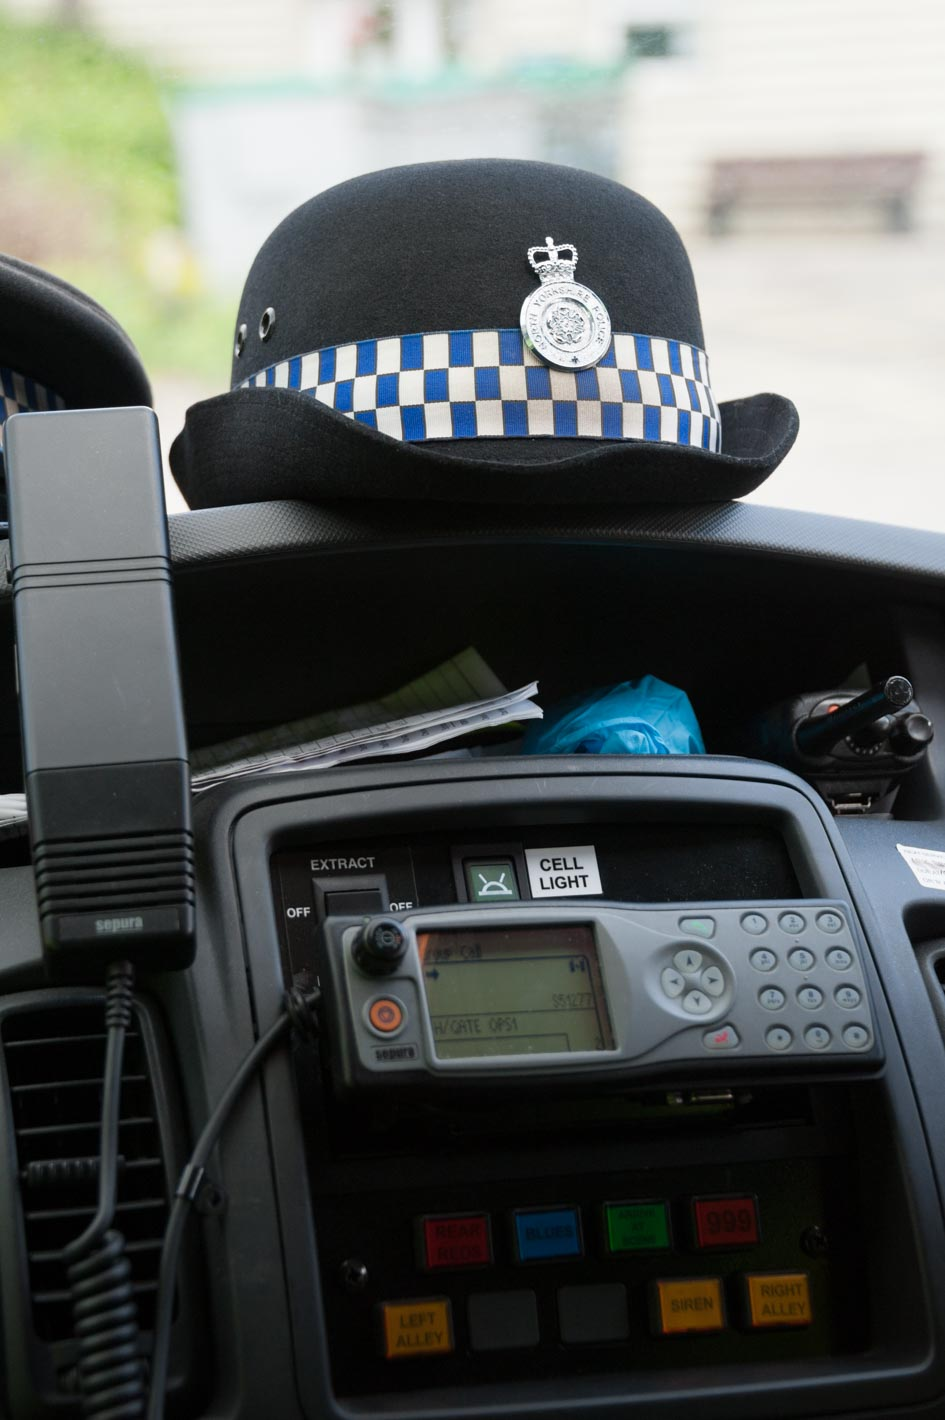 North Yorkshire Police Photography